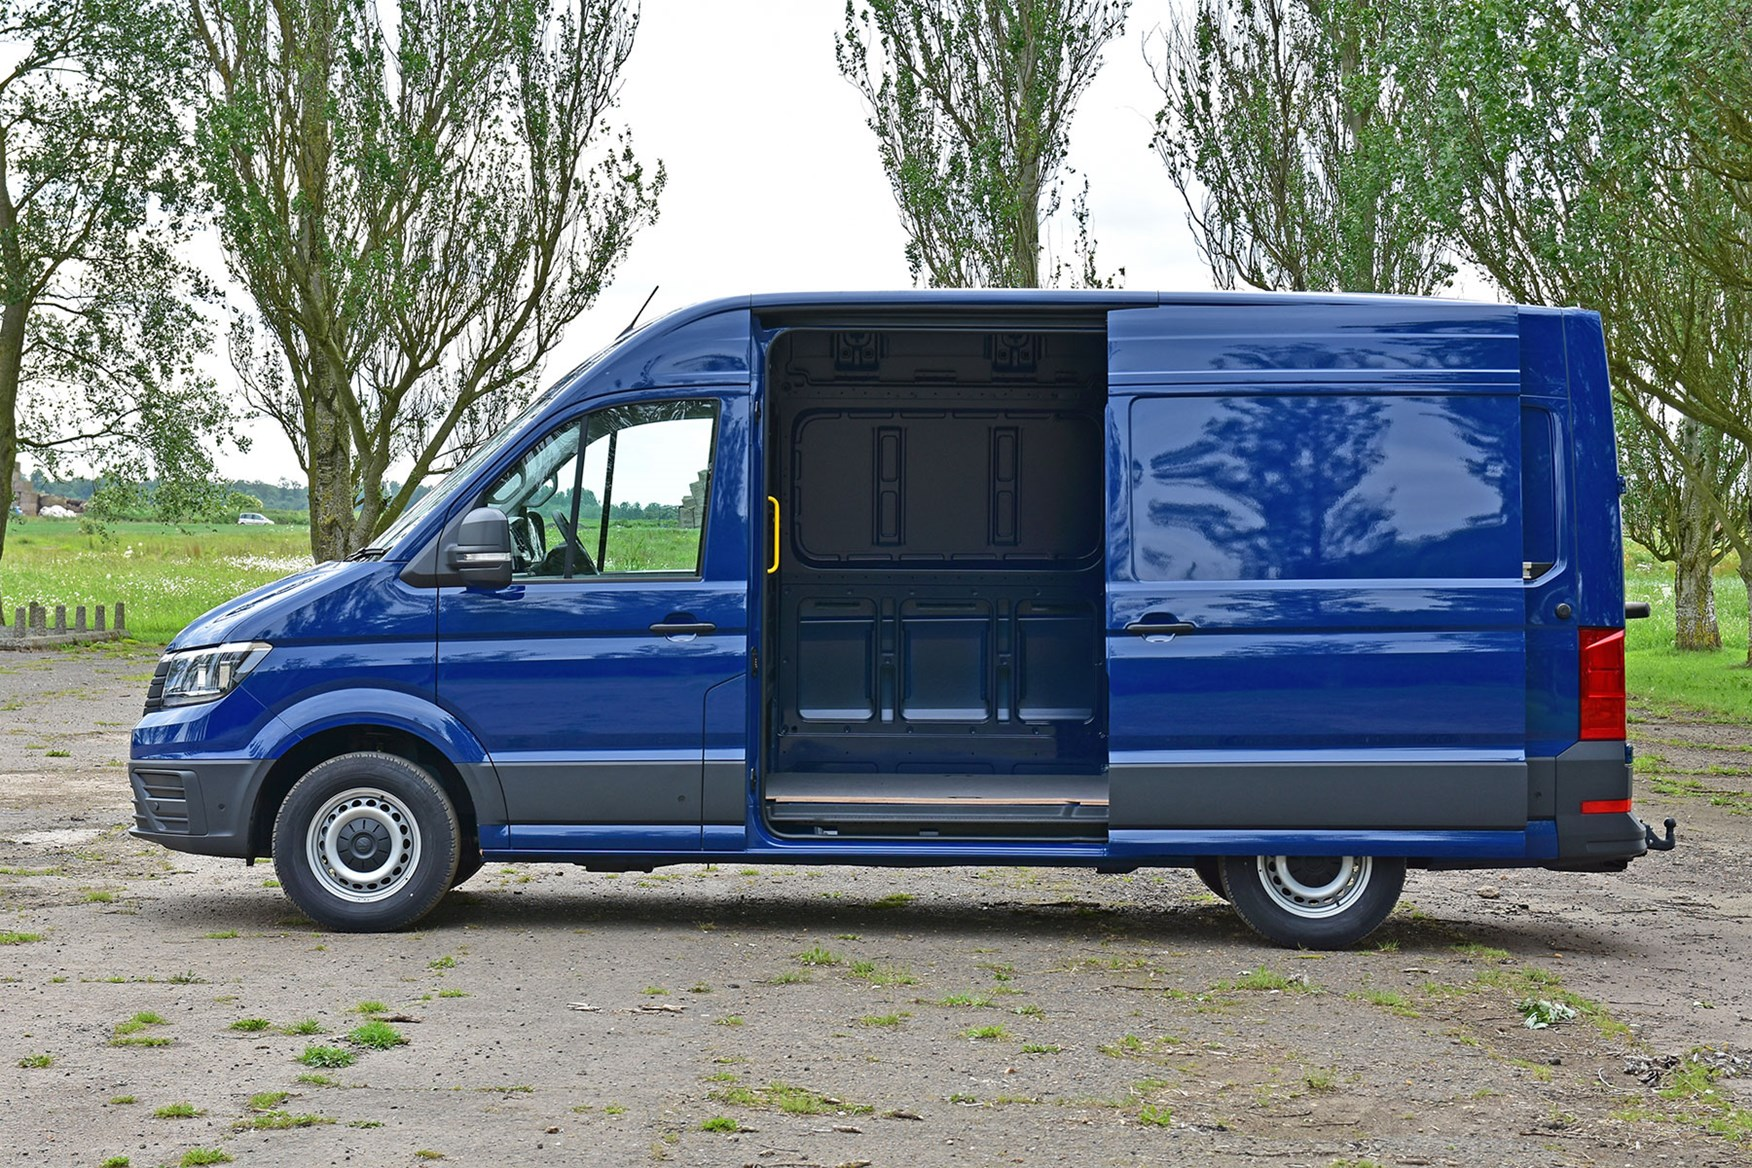 VW Crafter FWD review - side view, side door open, blue